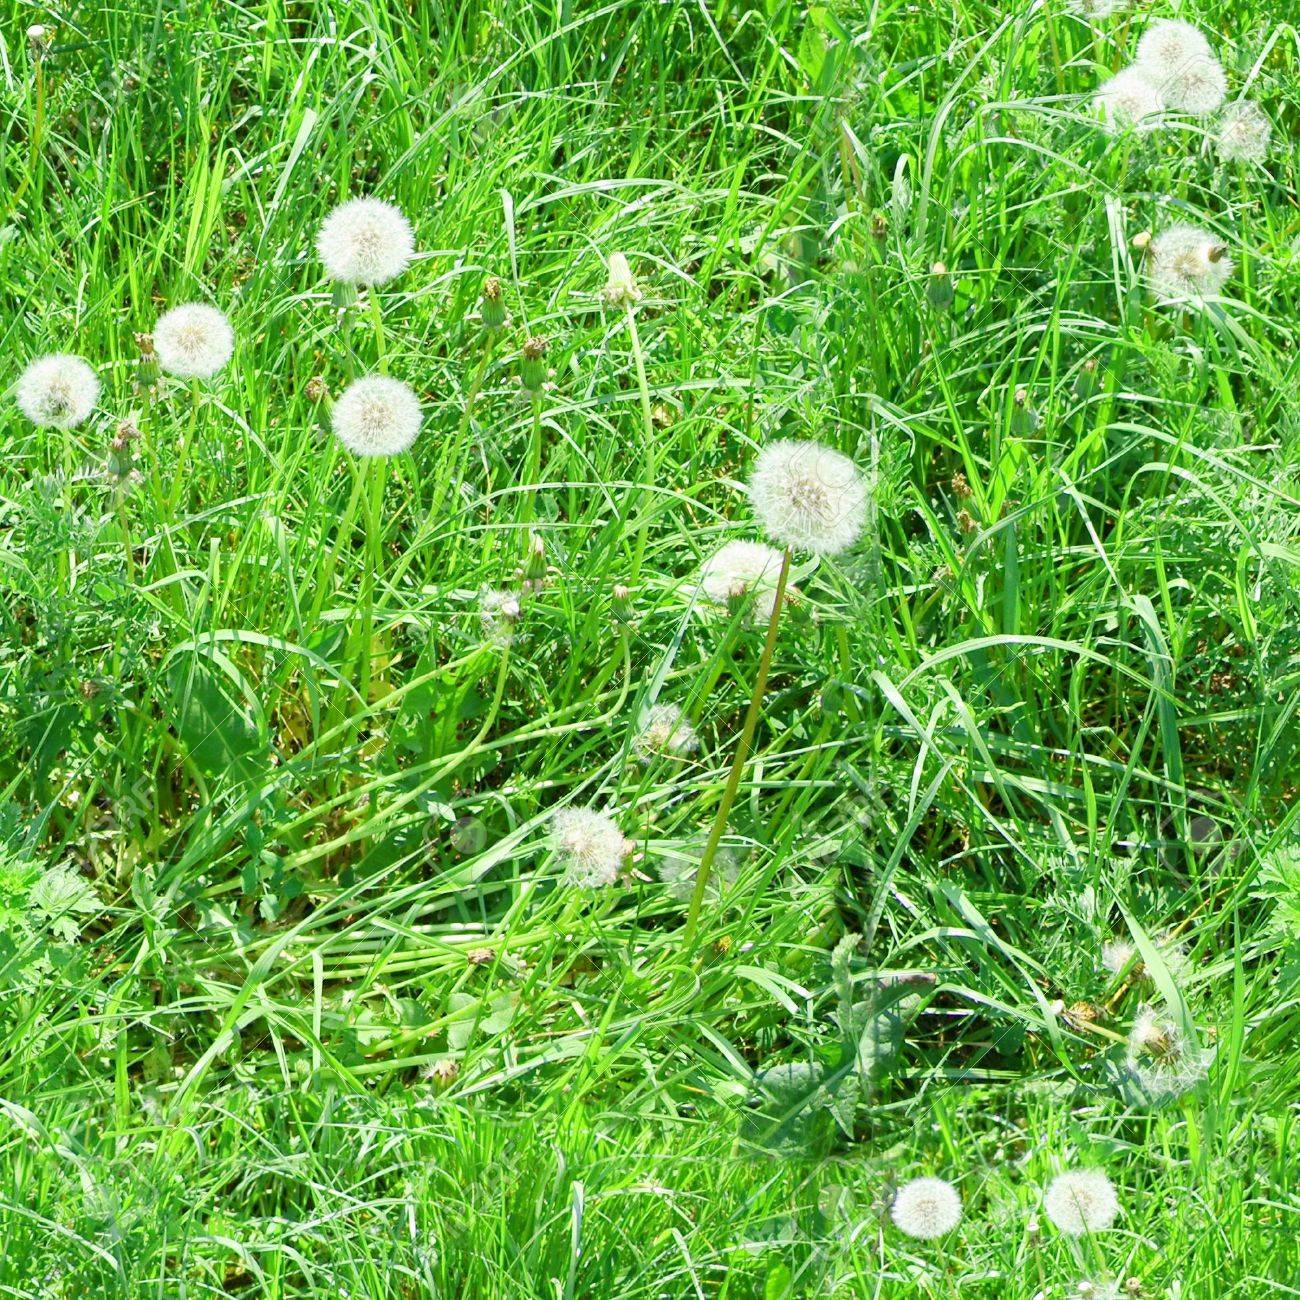 Grass background tile Bitmap 3ds Max Green Grass With White Dandelions Seamless Tile For Background Wallpaper Etc 123rfcom Green Grass With White Dandelions Seamless Tile For Background